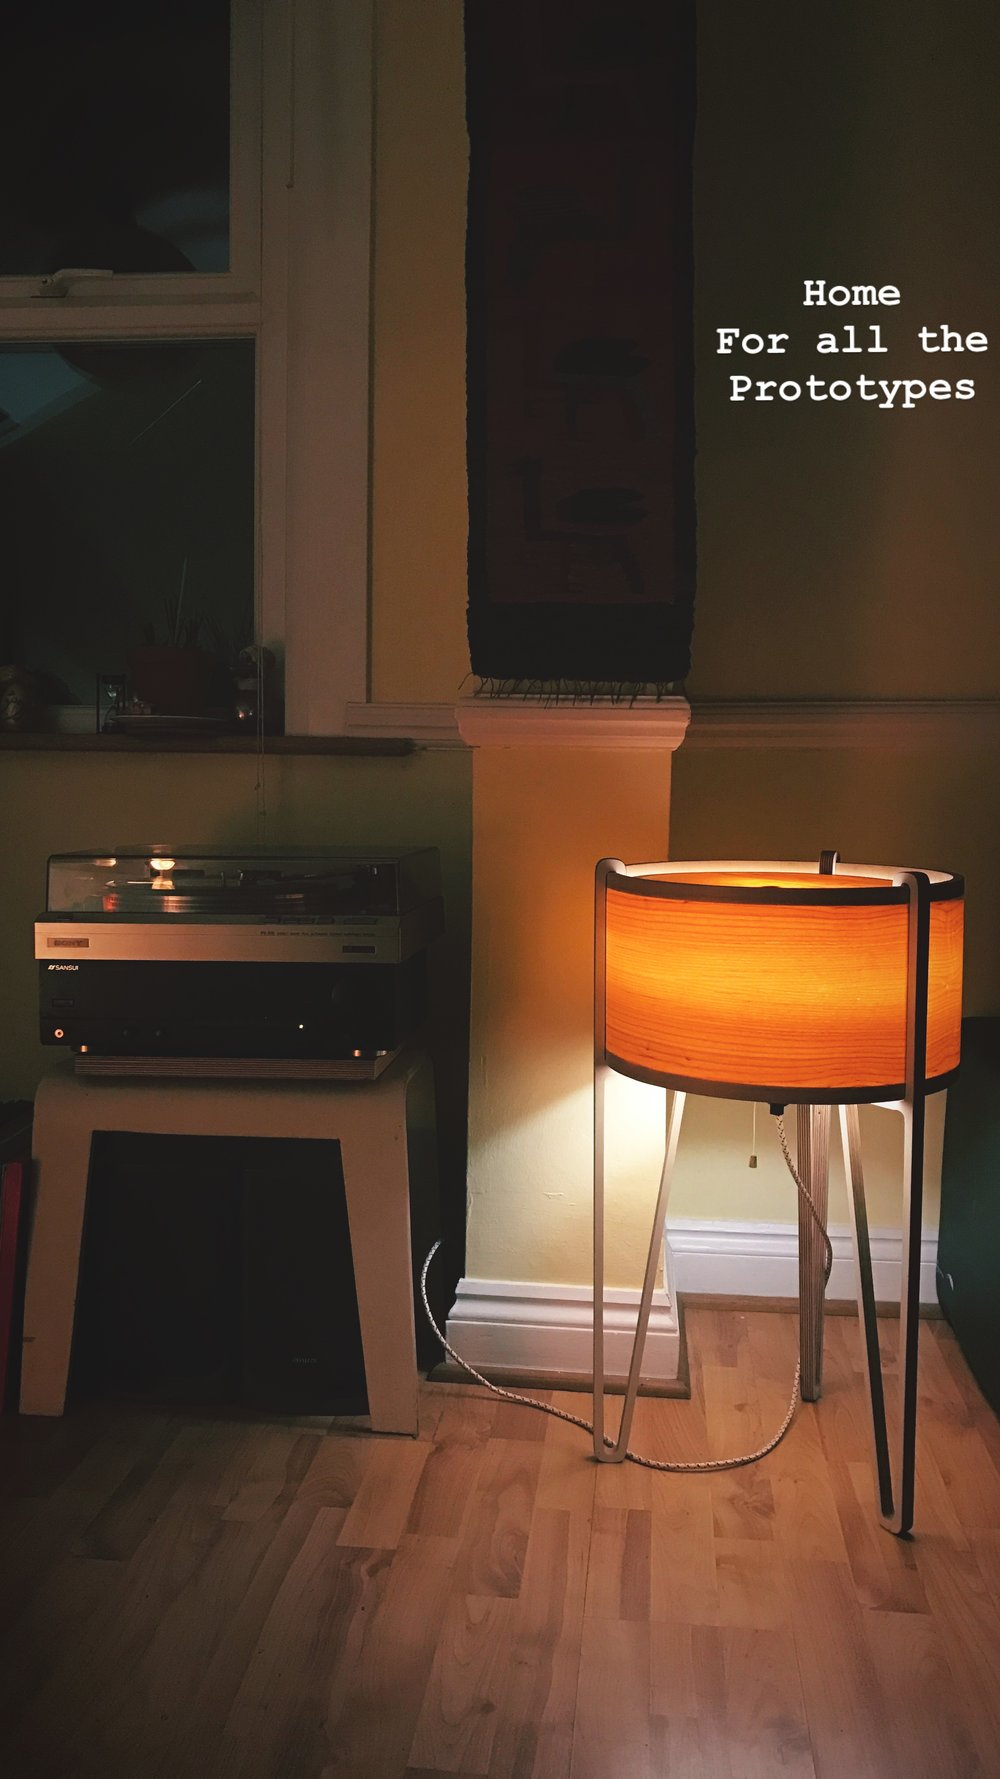 The floor lamp prototype at home in Lozi's founder's flat.